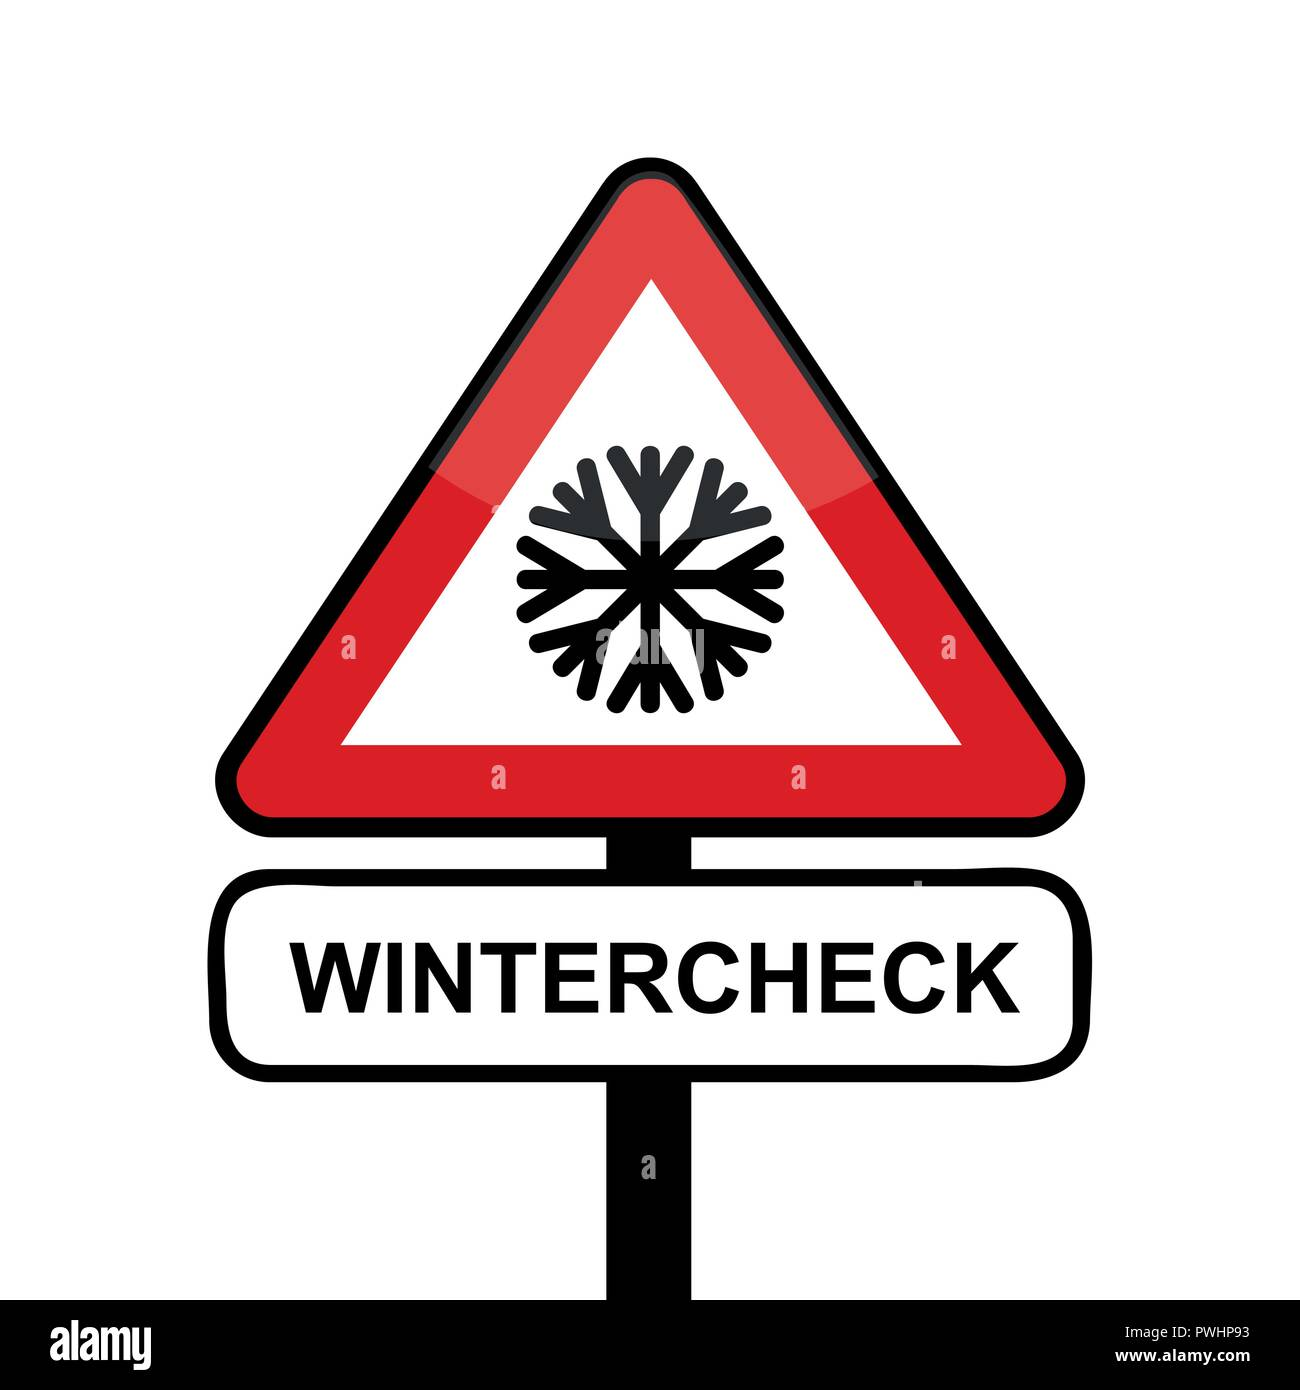 triangle road sign with snowflake icon winter check typography vector illustration - Stock Image